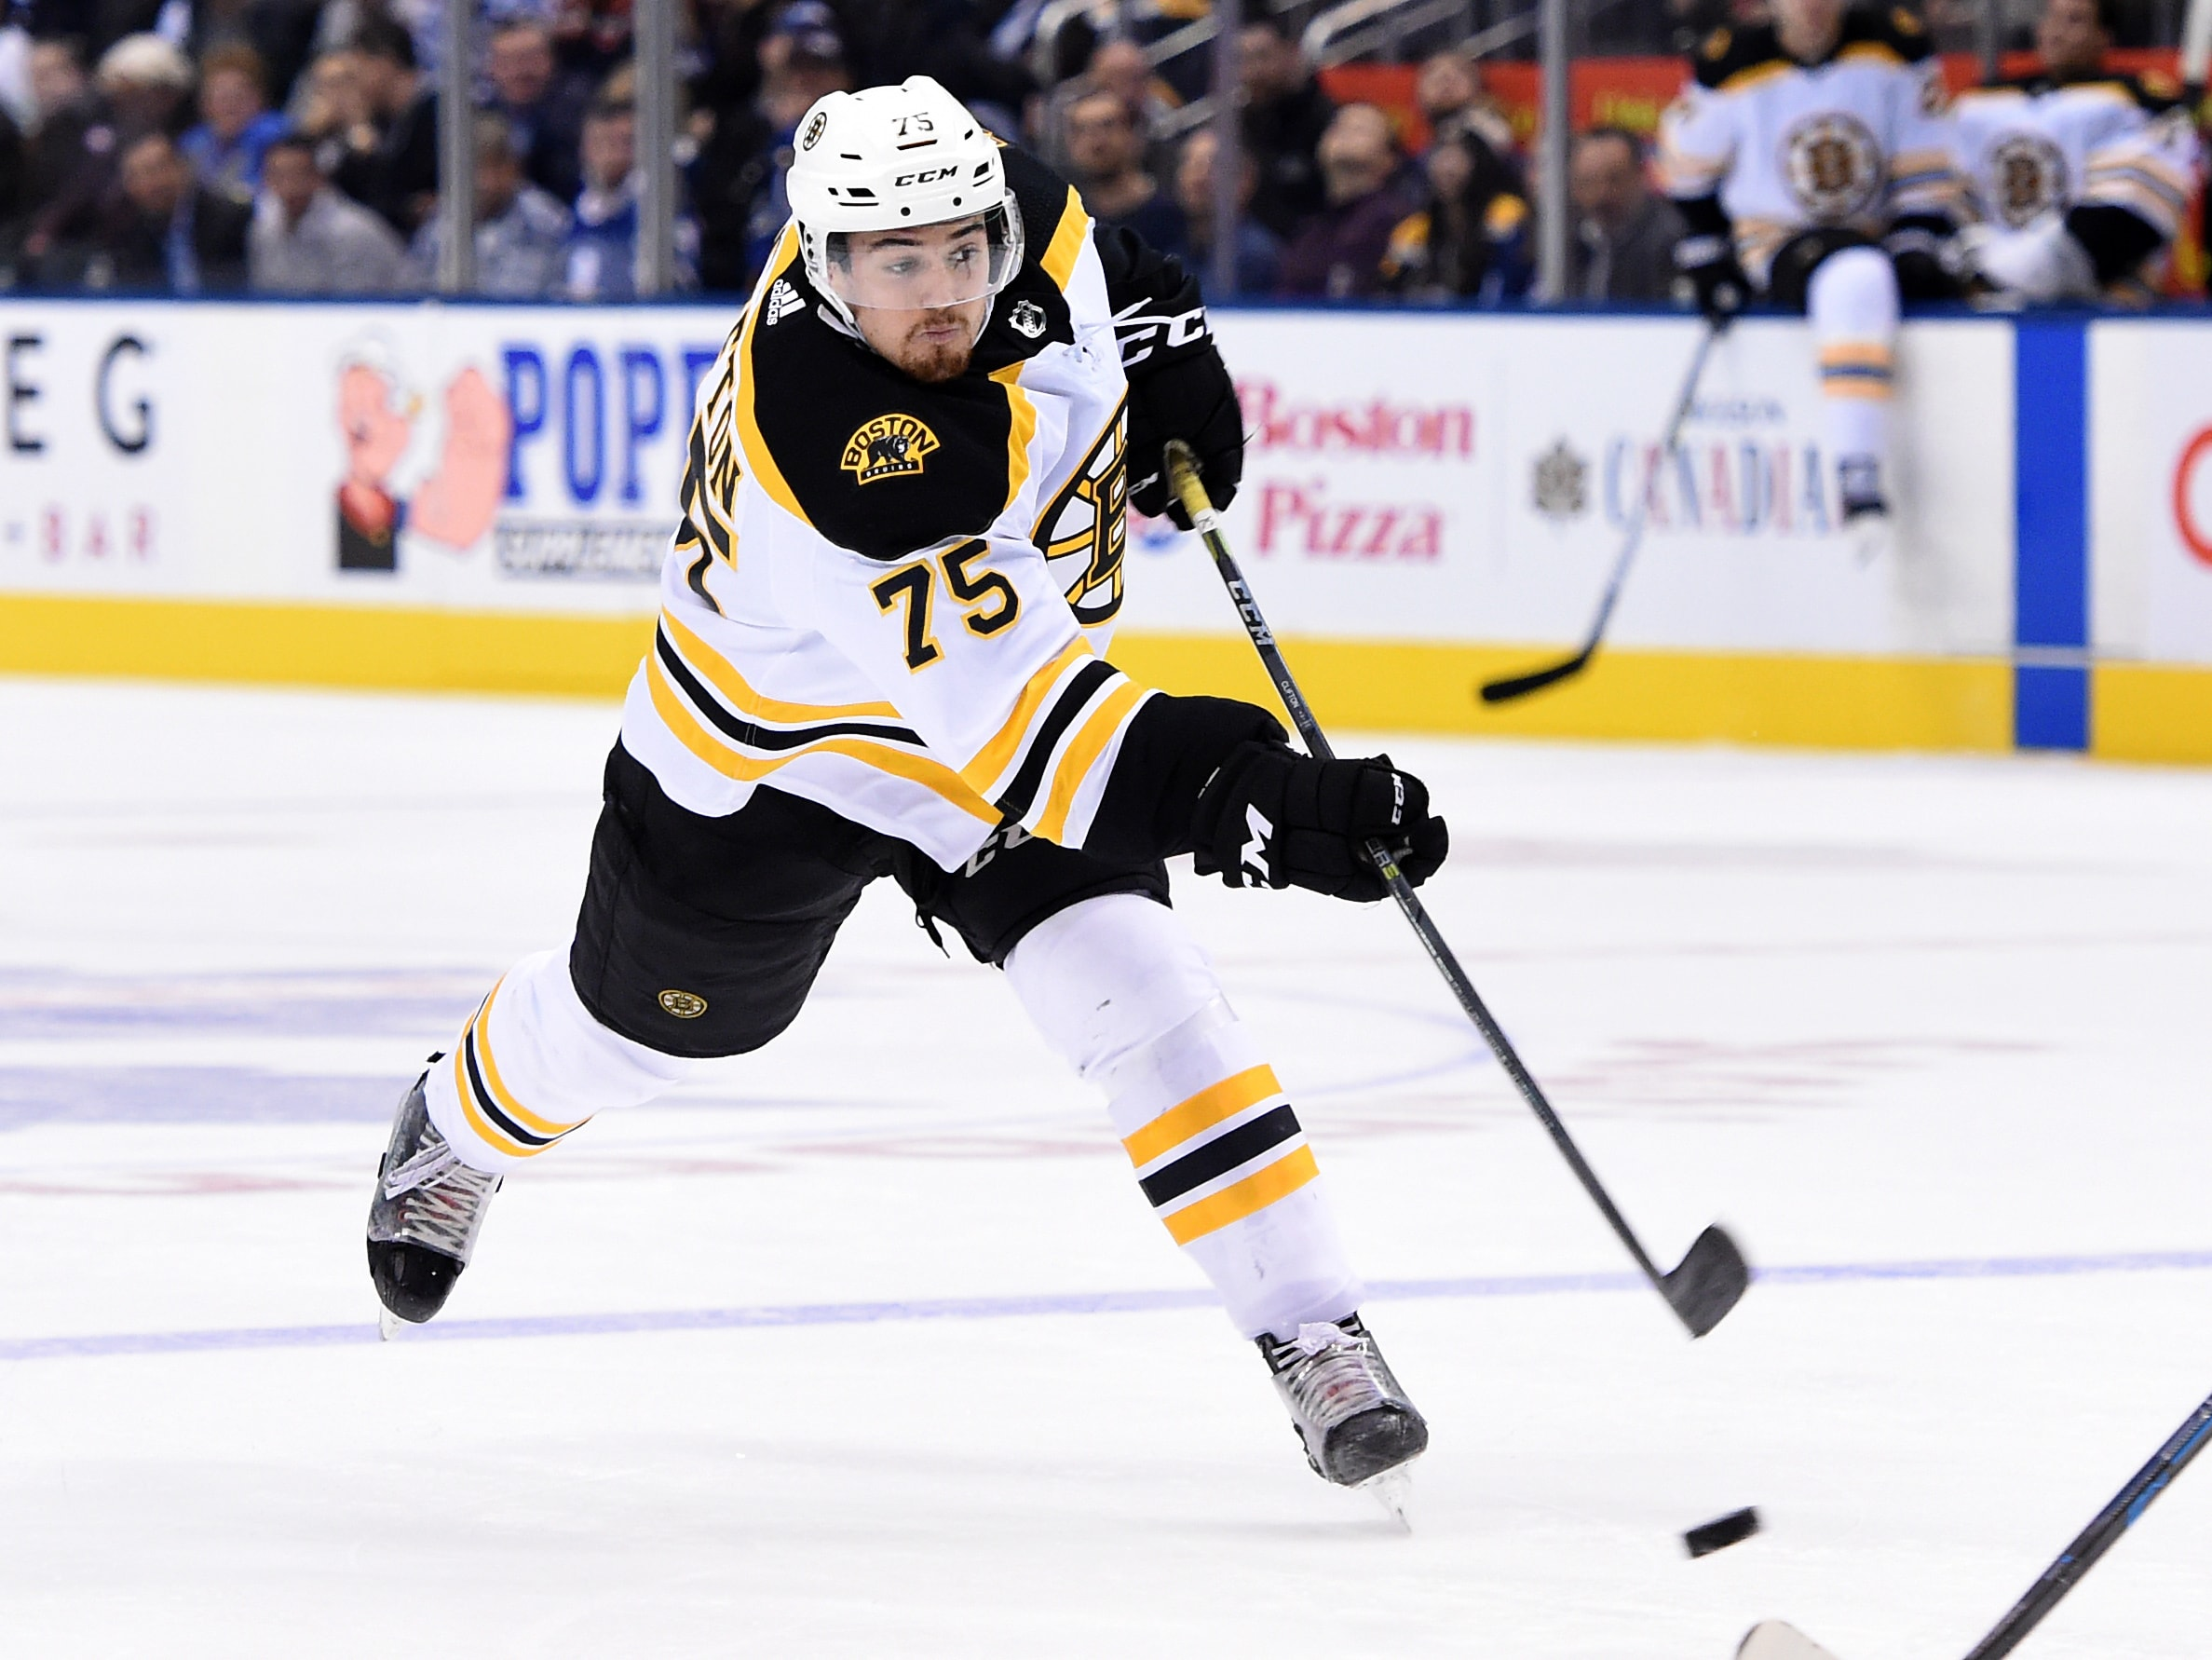 Nov 26, 2018; Toronto, Ontario: Boston Bruins defenceman Connor Clifton shoots the puck against Toronto Maple Leafs in the first period at Scotiabank Arena. (Dan Hamilton-USA TODAY Sports)